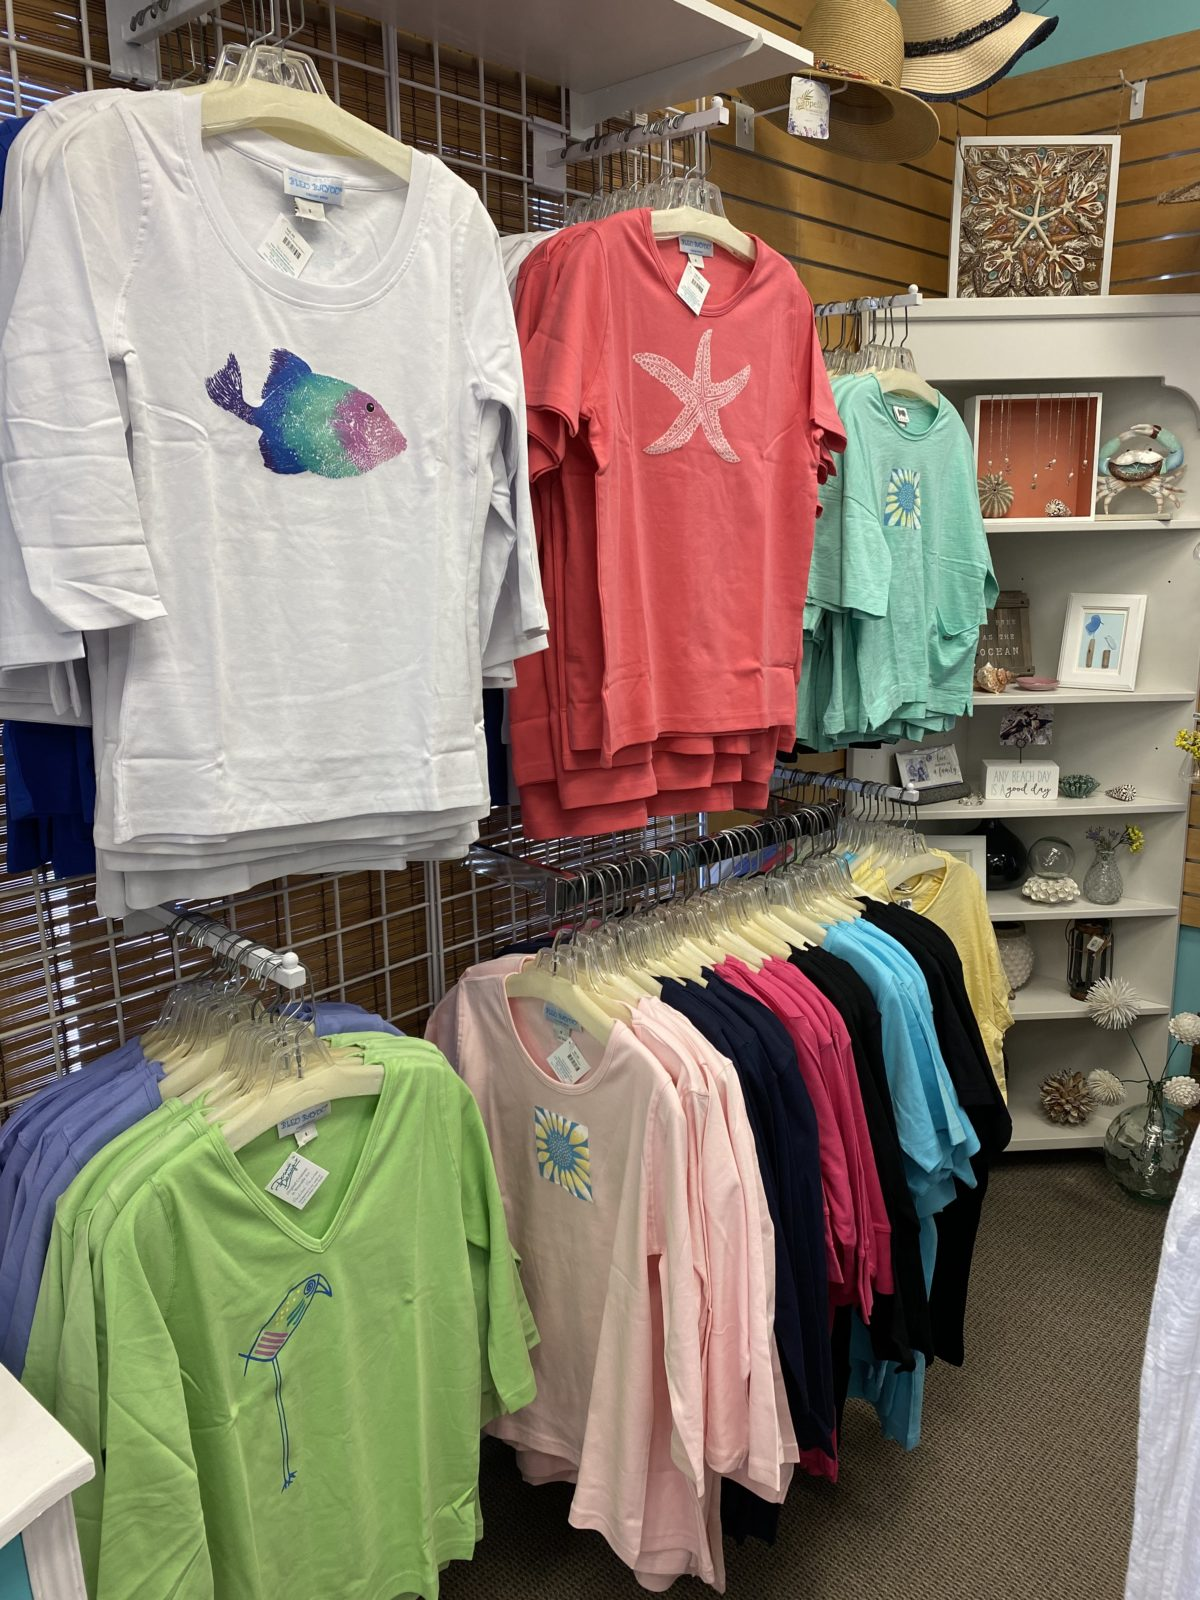 OBX Hand-painted Tshirts